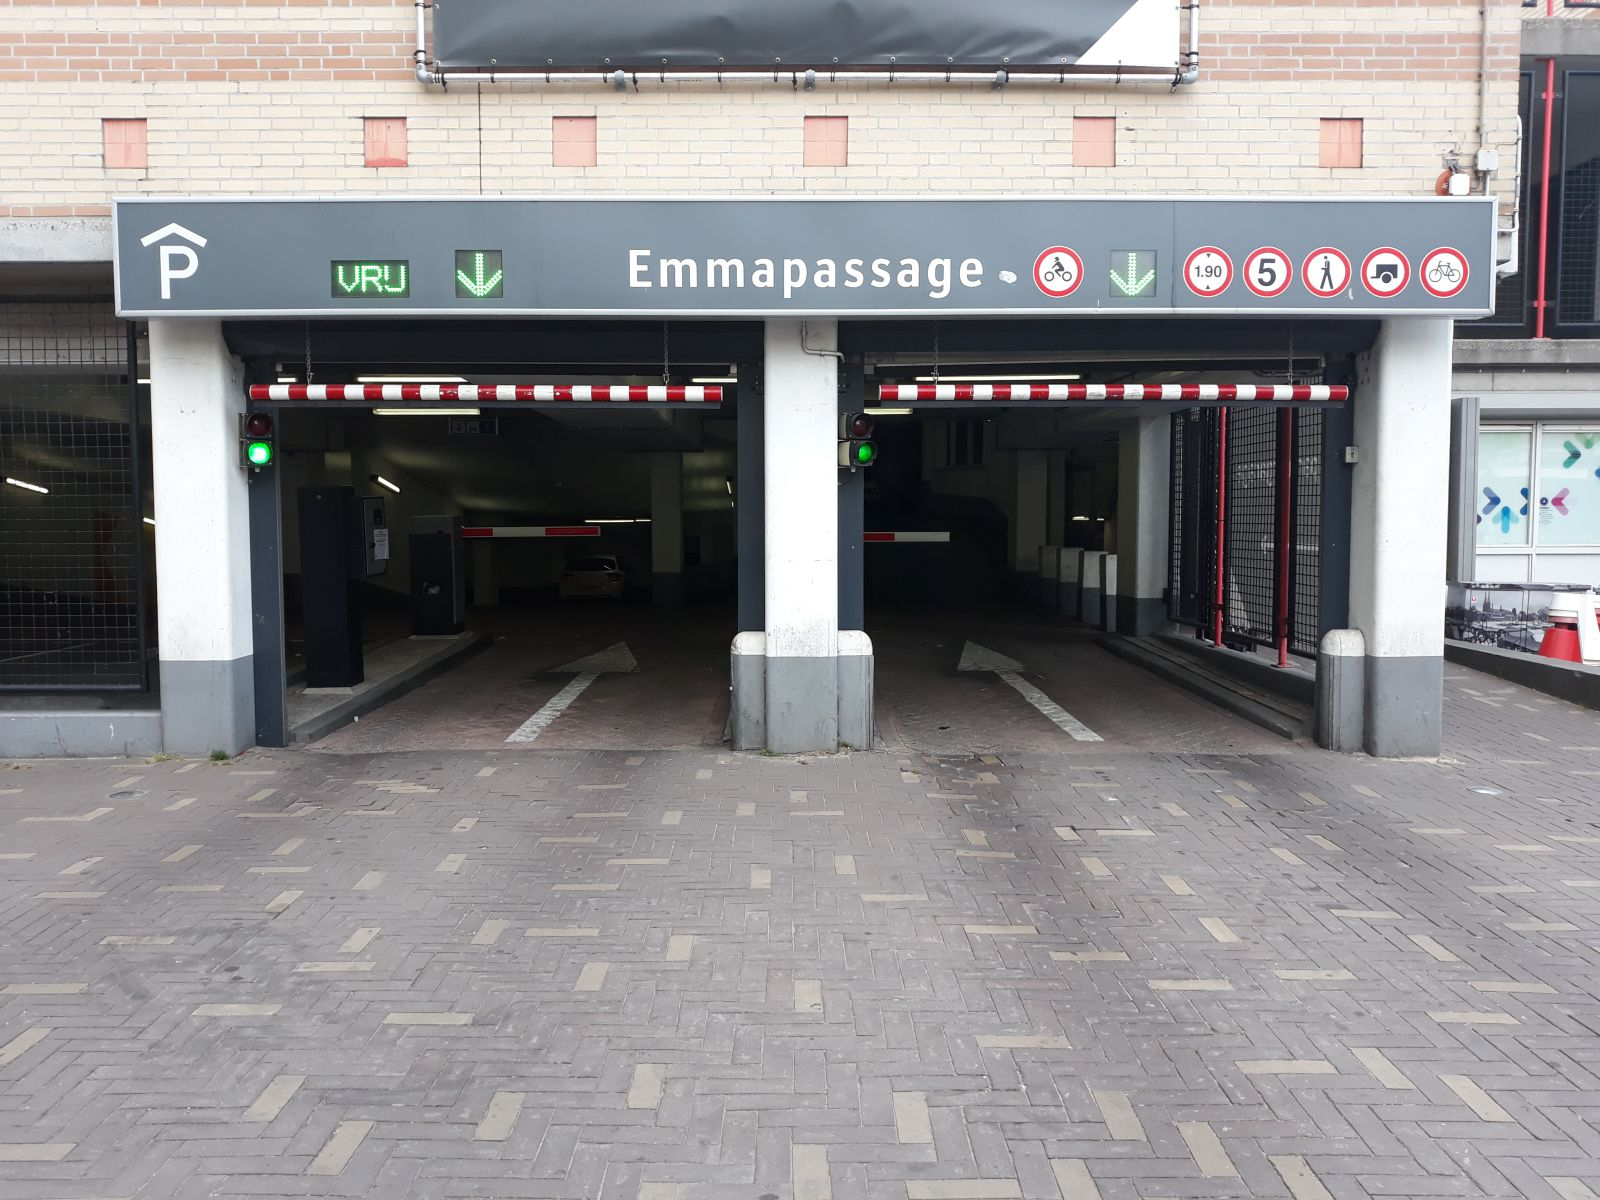 Parkeergarage Emmapassage